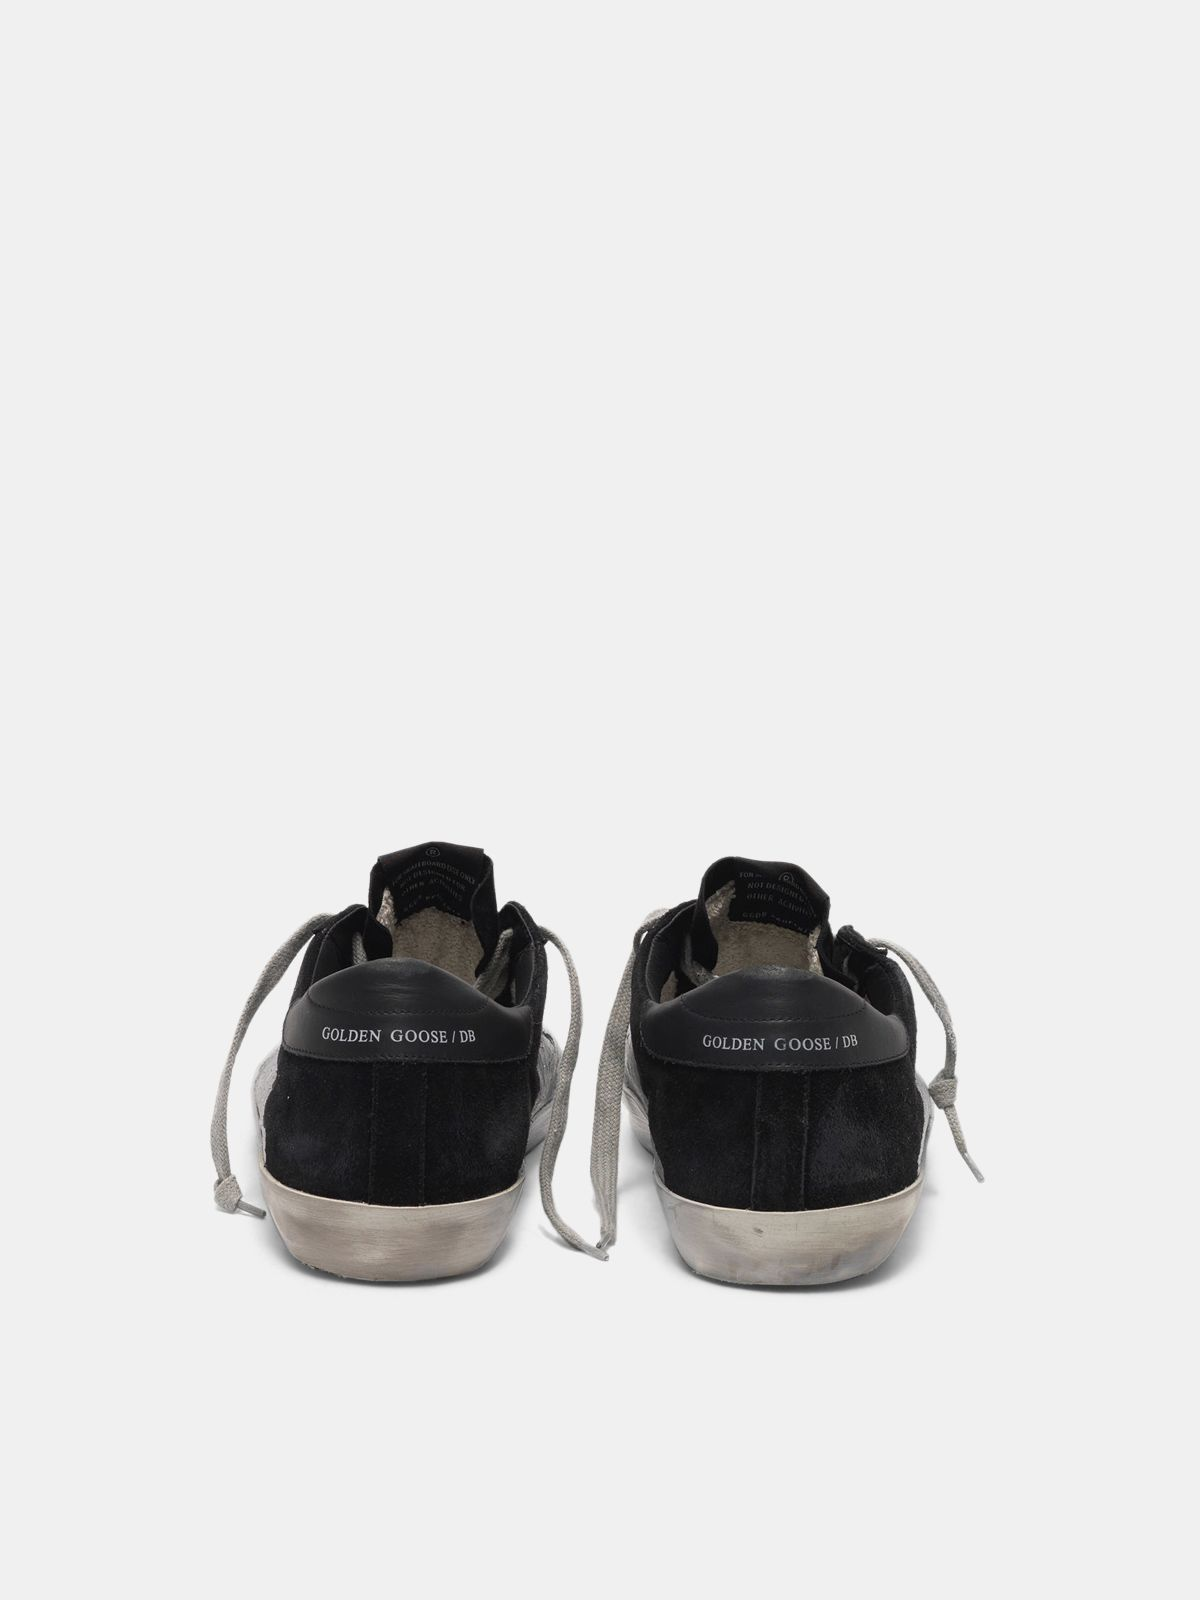 Golden Goose - Super-Star sneakers worked with a crackle effect varnish in